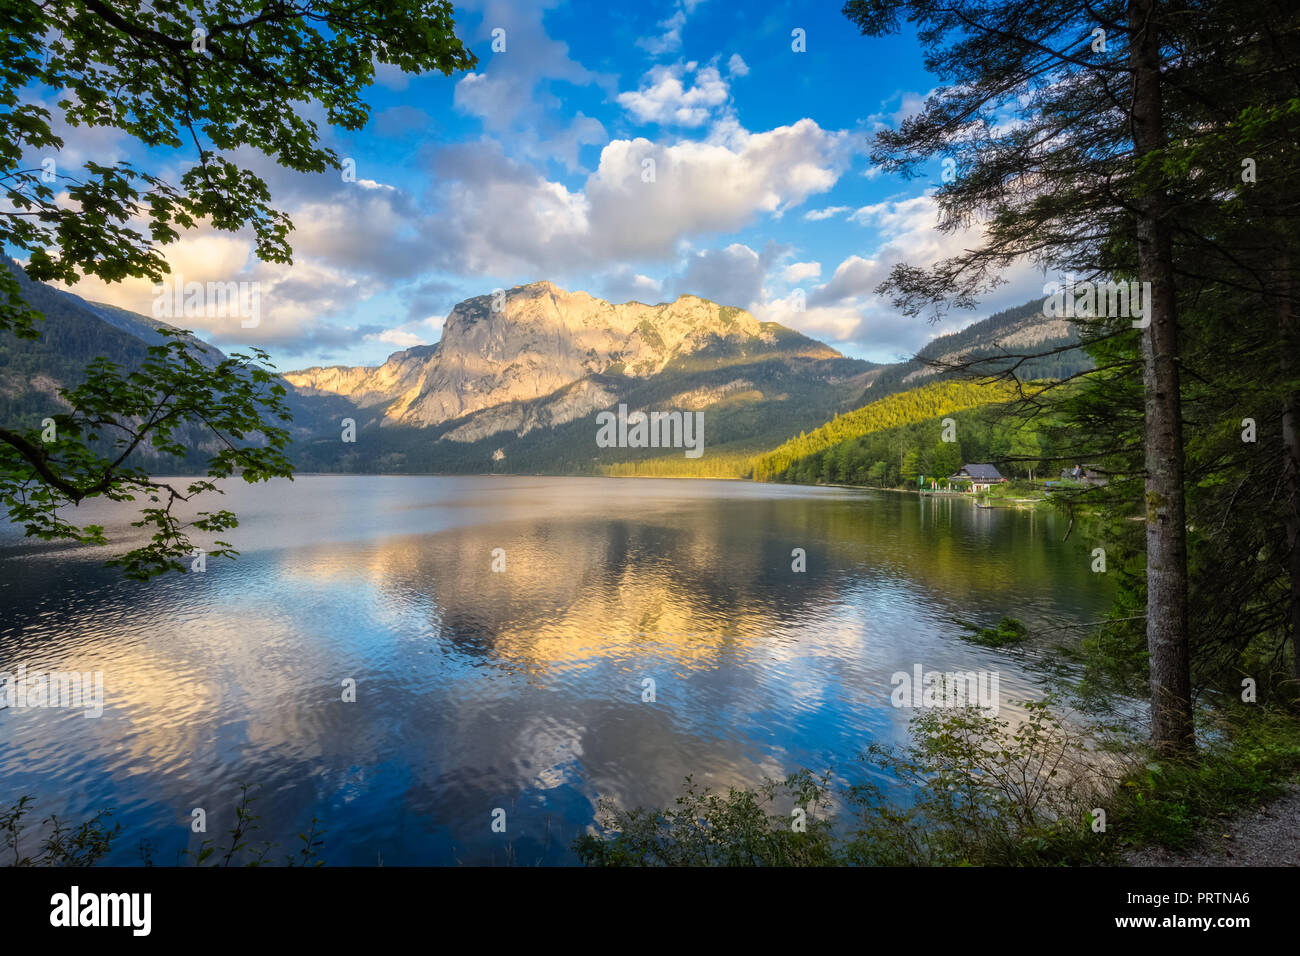 Altaussee, Autriche Photo Stock